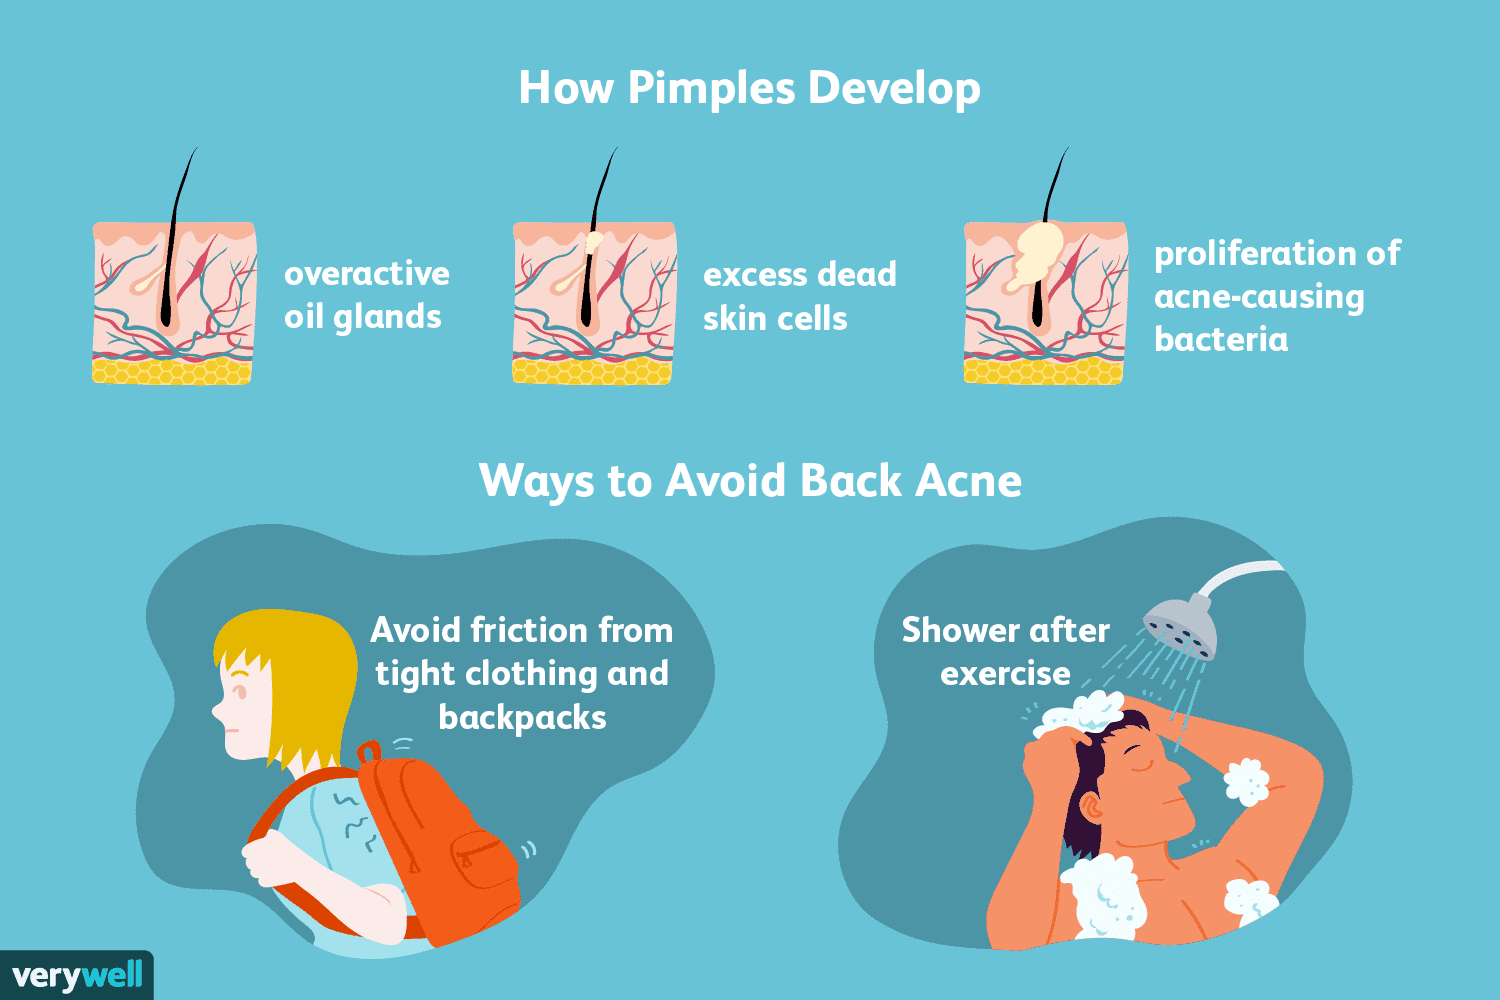 How pimples develop and Ways to avoid back acne